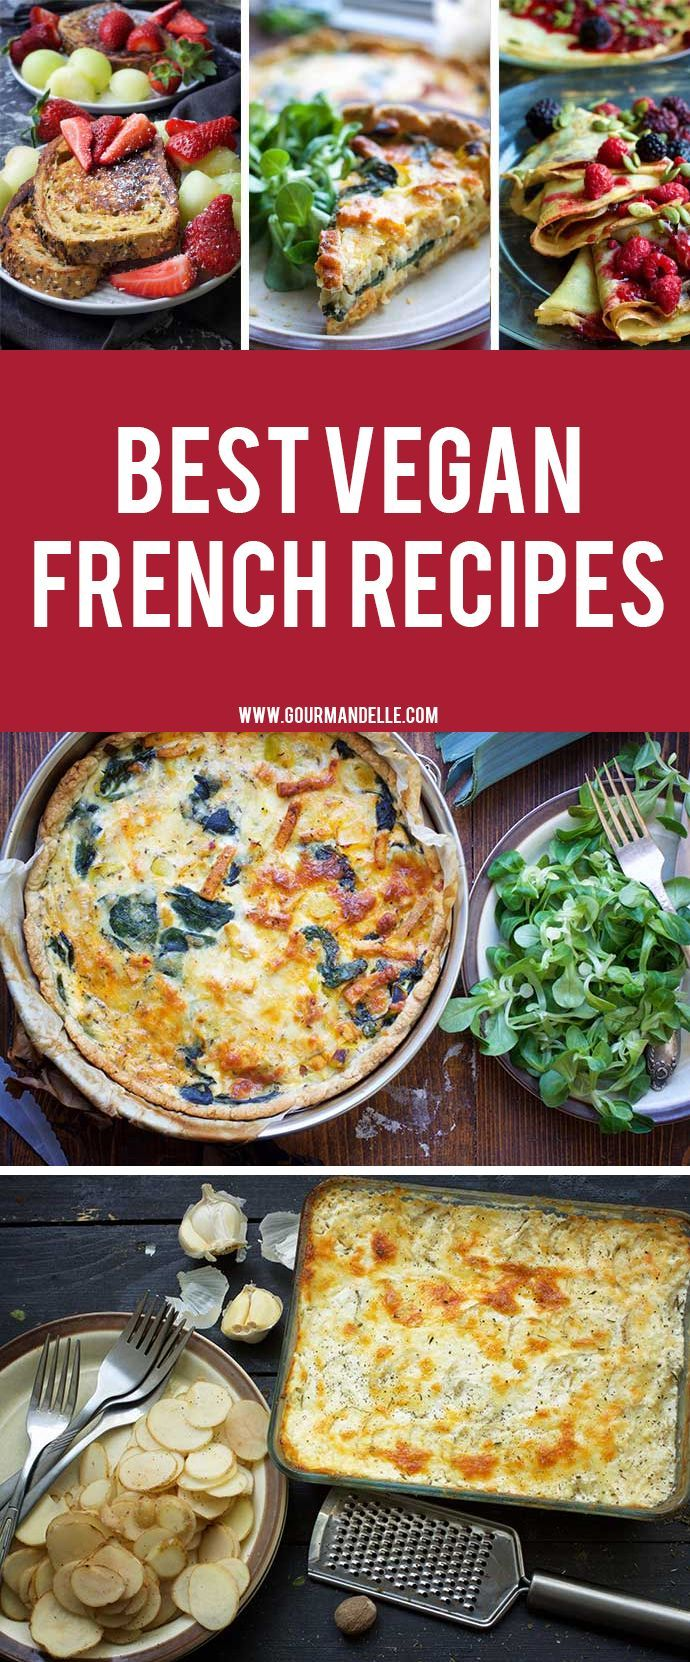 French Cuisine Complete Guide For Foodies Vegan French Recipes French Cuisine Recipes French Cuisine